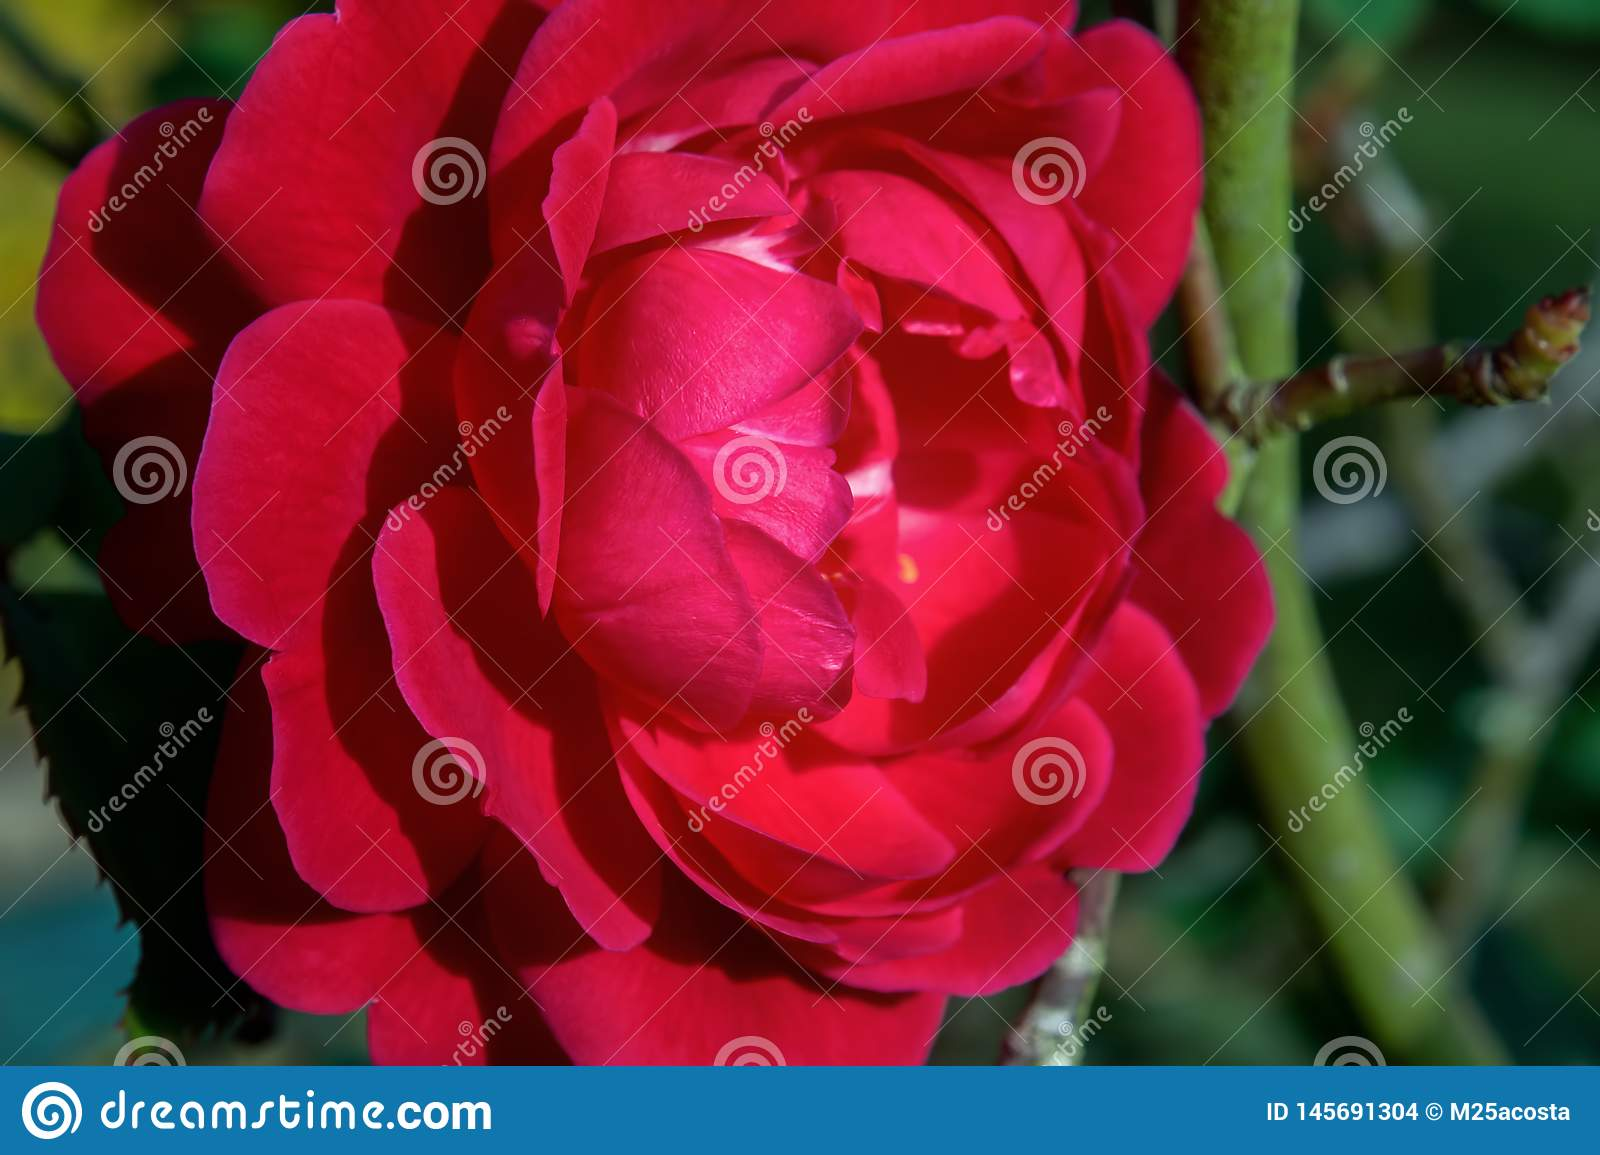 Red common camellia flower in a garden